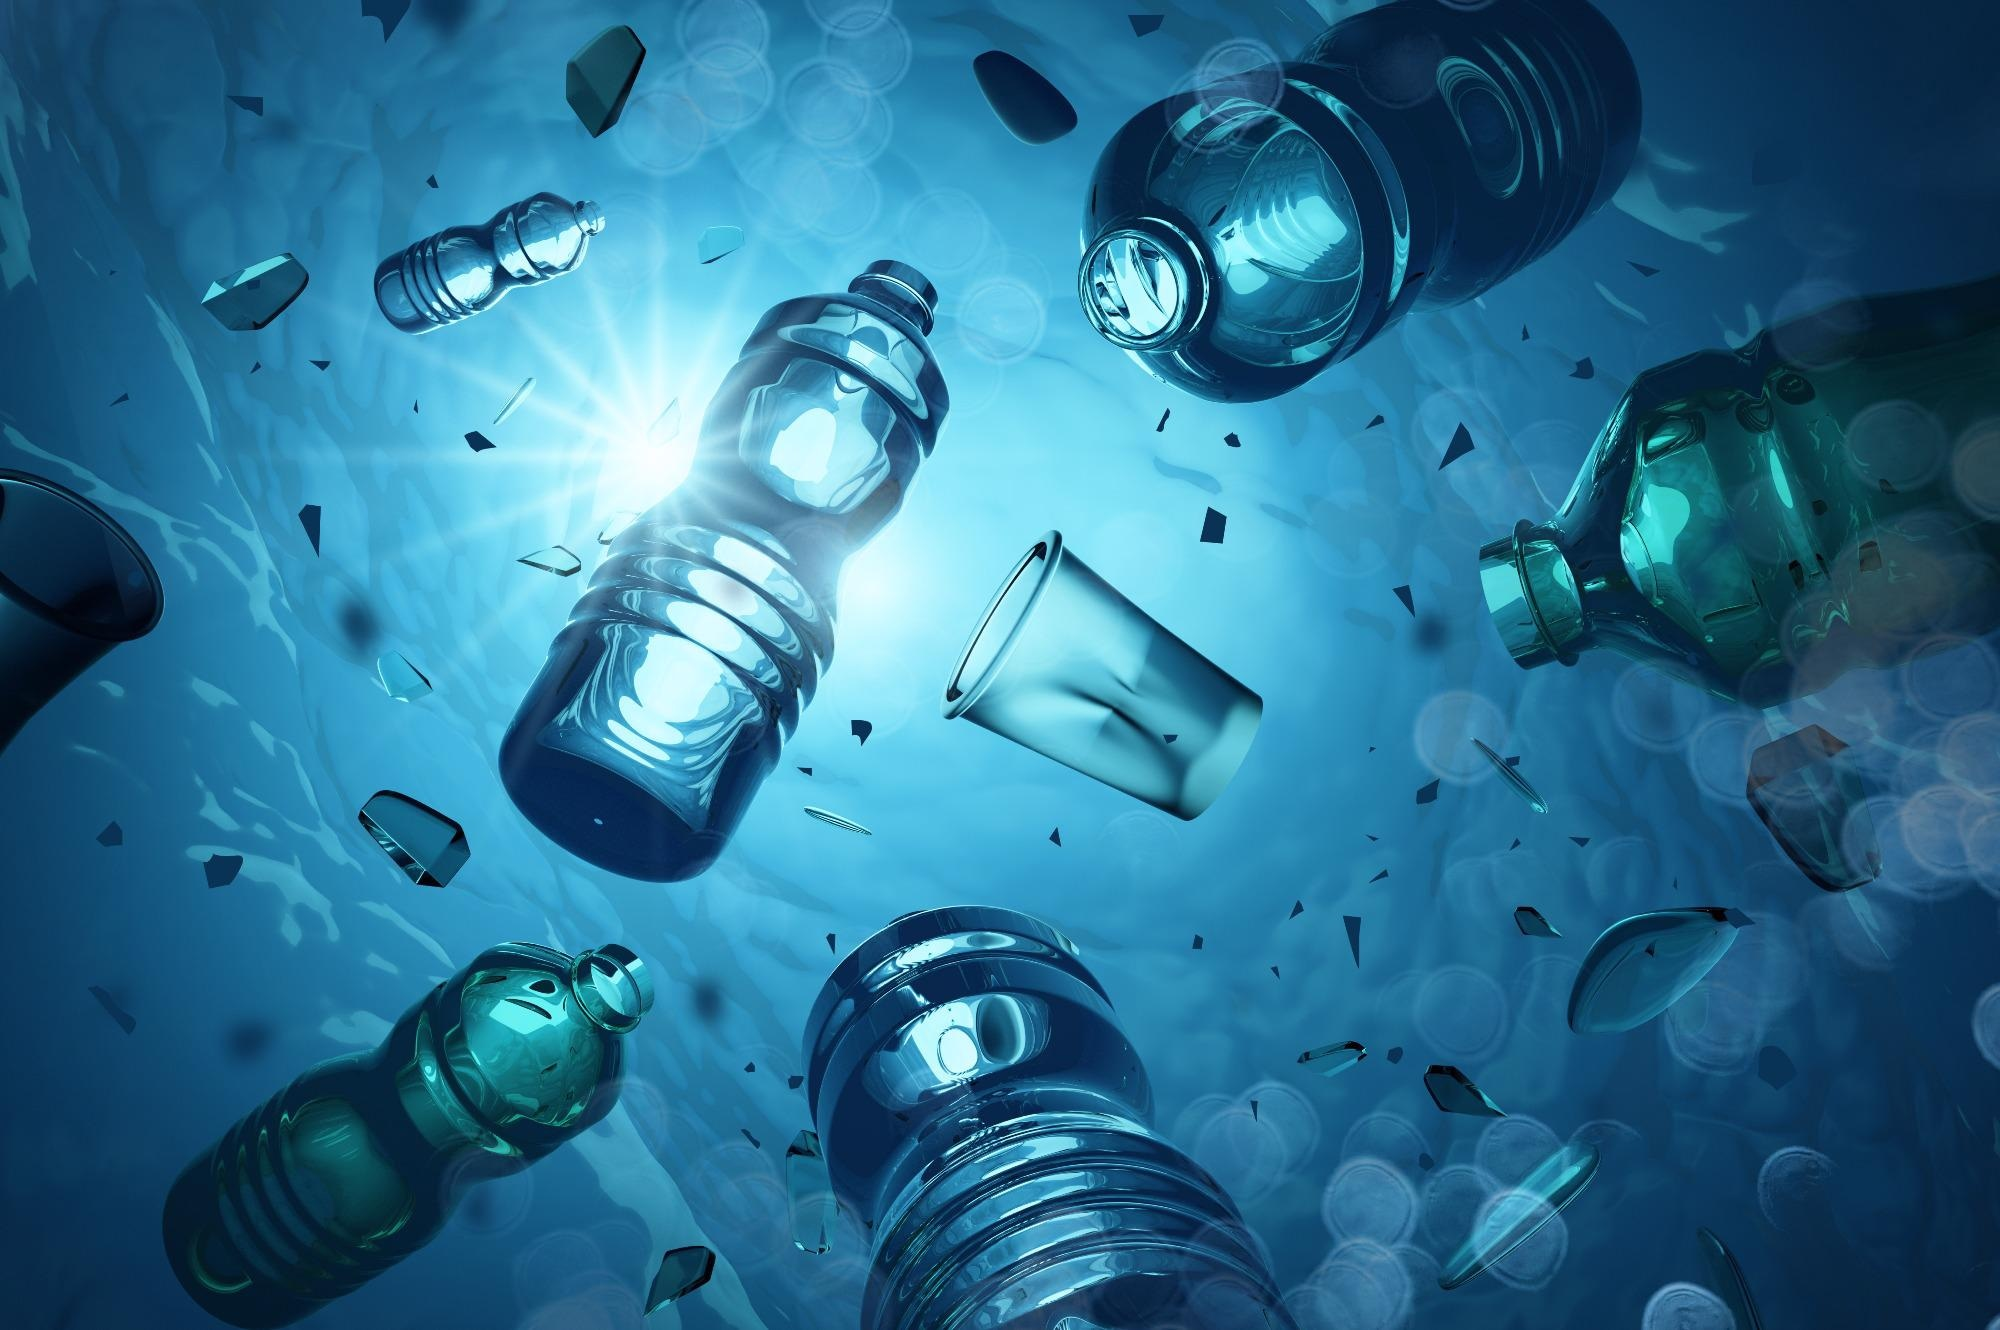 RNA-Inspired Biodegradable Polymer Could Cut Marine Pollution